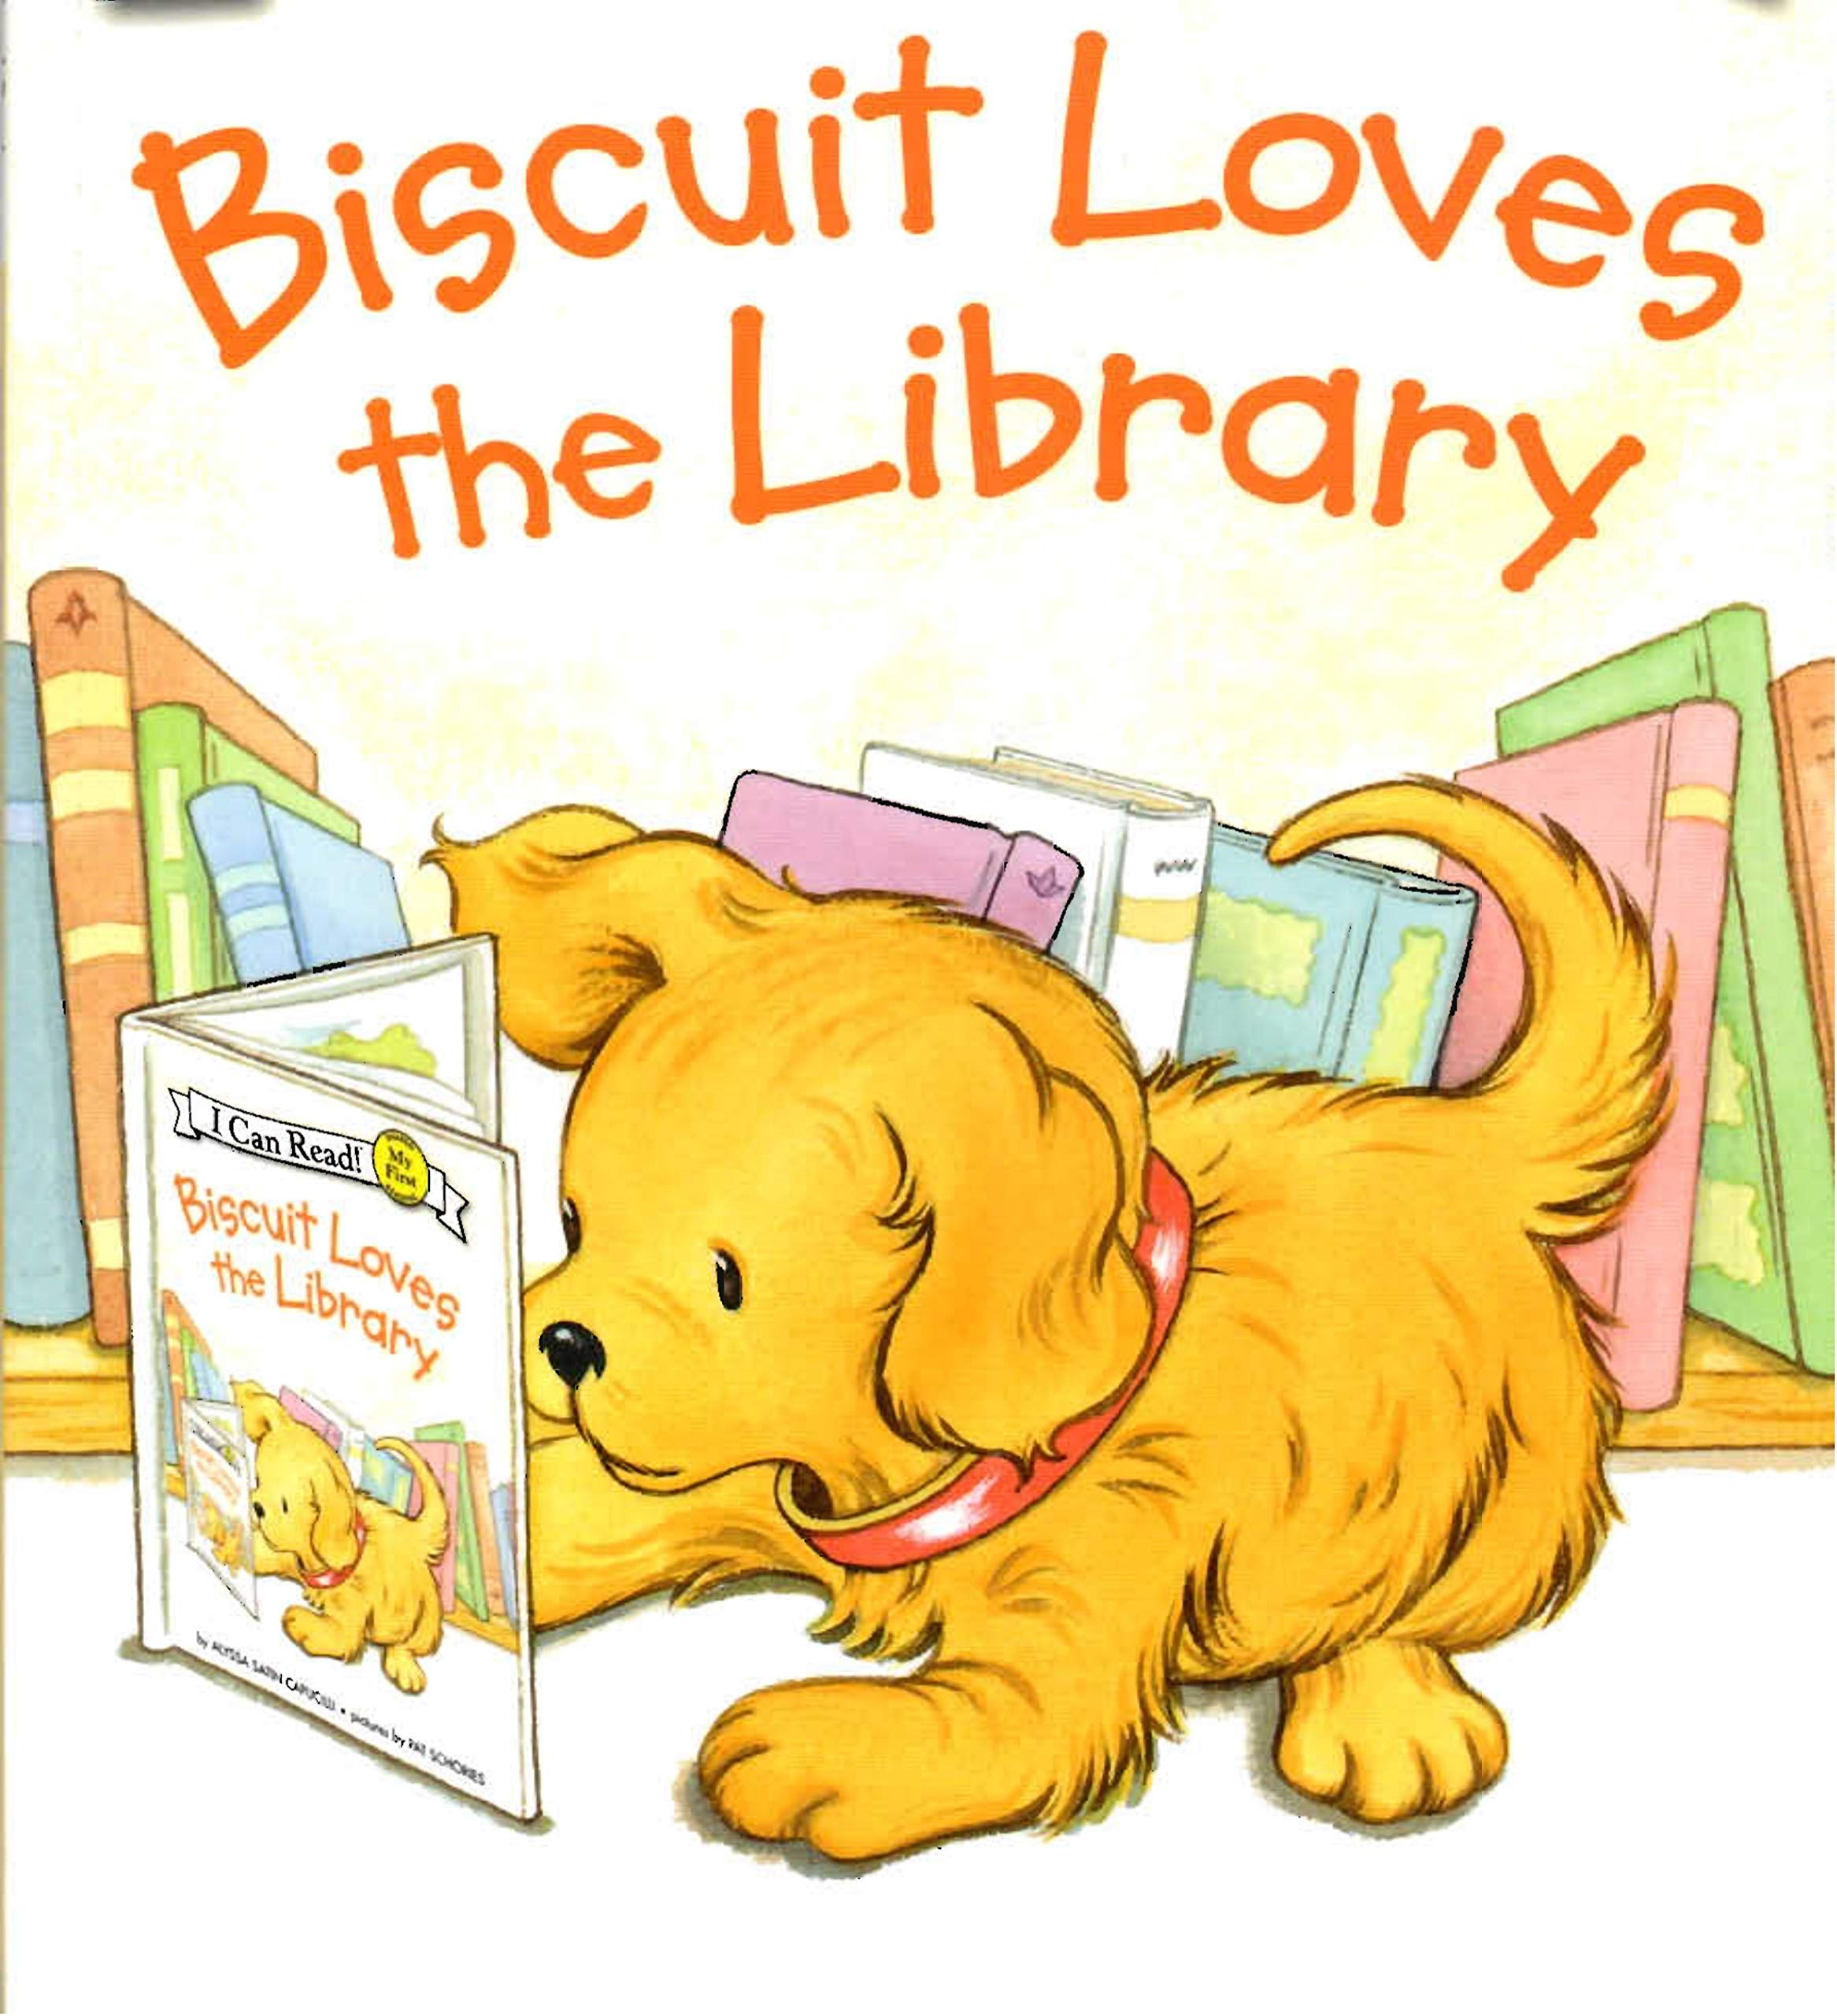 Biscuit Loves the library: Children's books for 4-7 years old